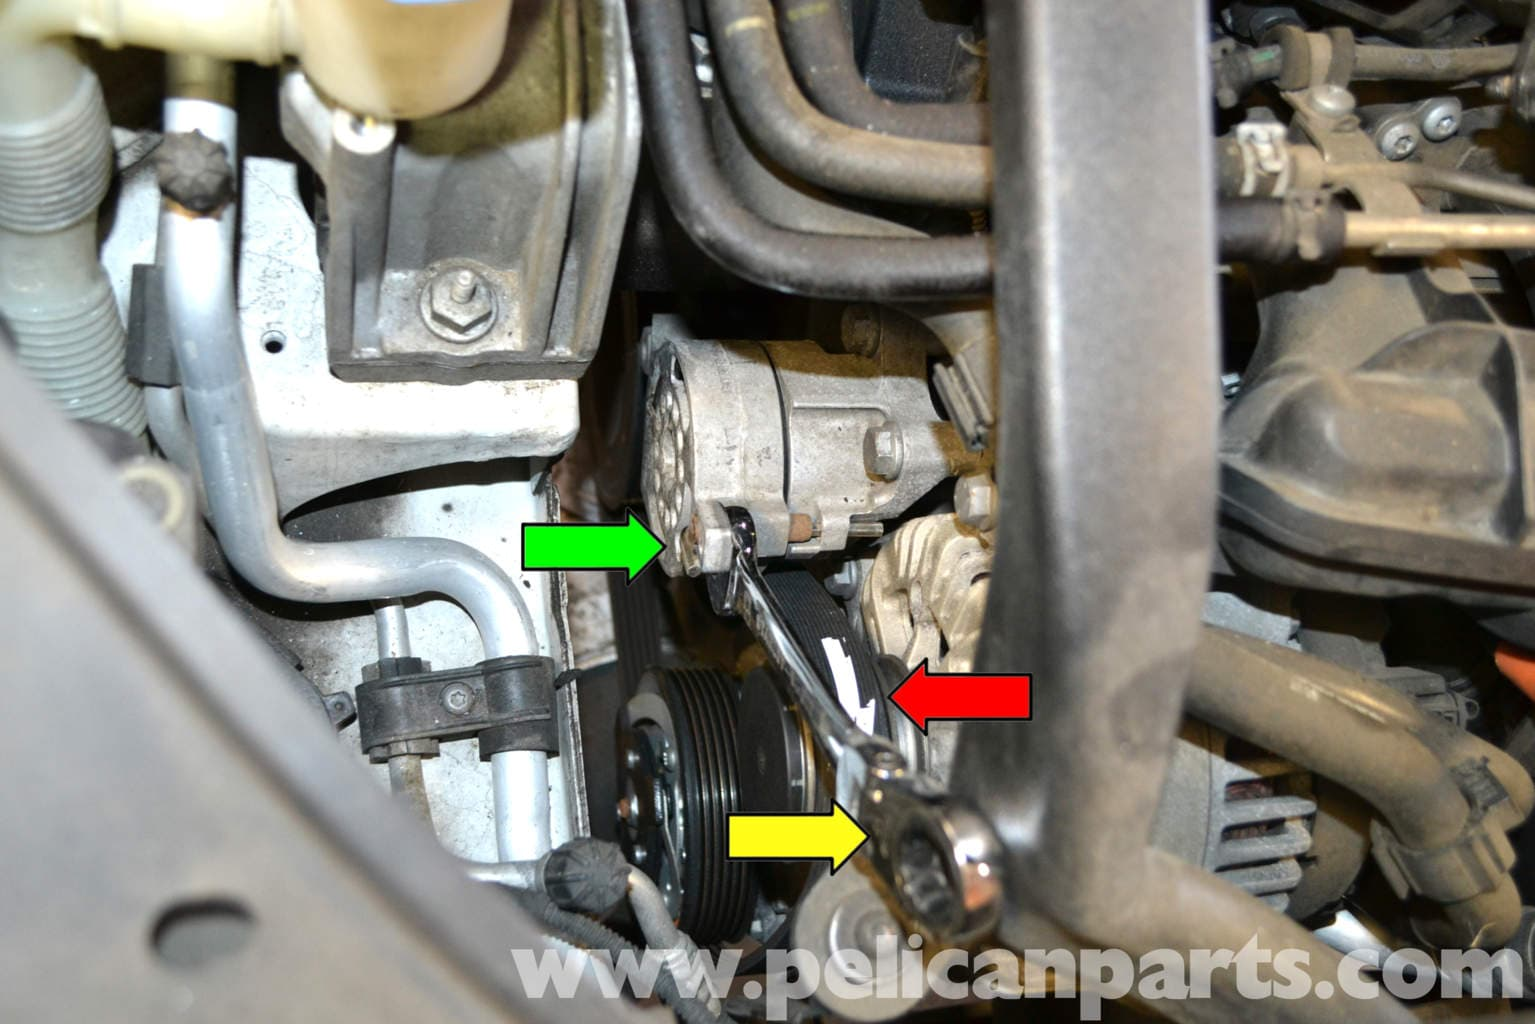 I Fuse Diagram Volkswagen Golf Gti Mk V Thermostat Replacement 2006 2009